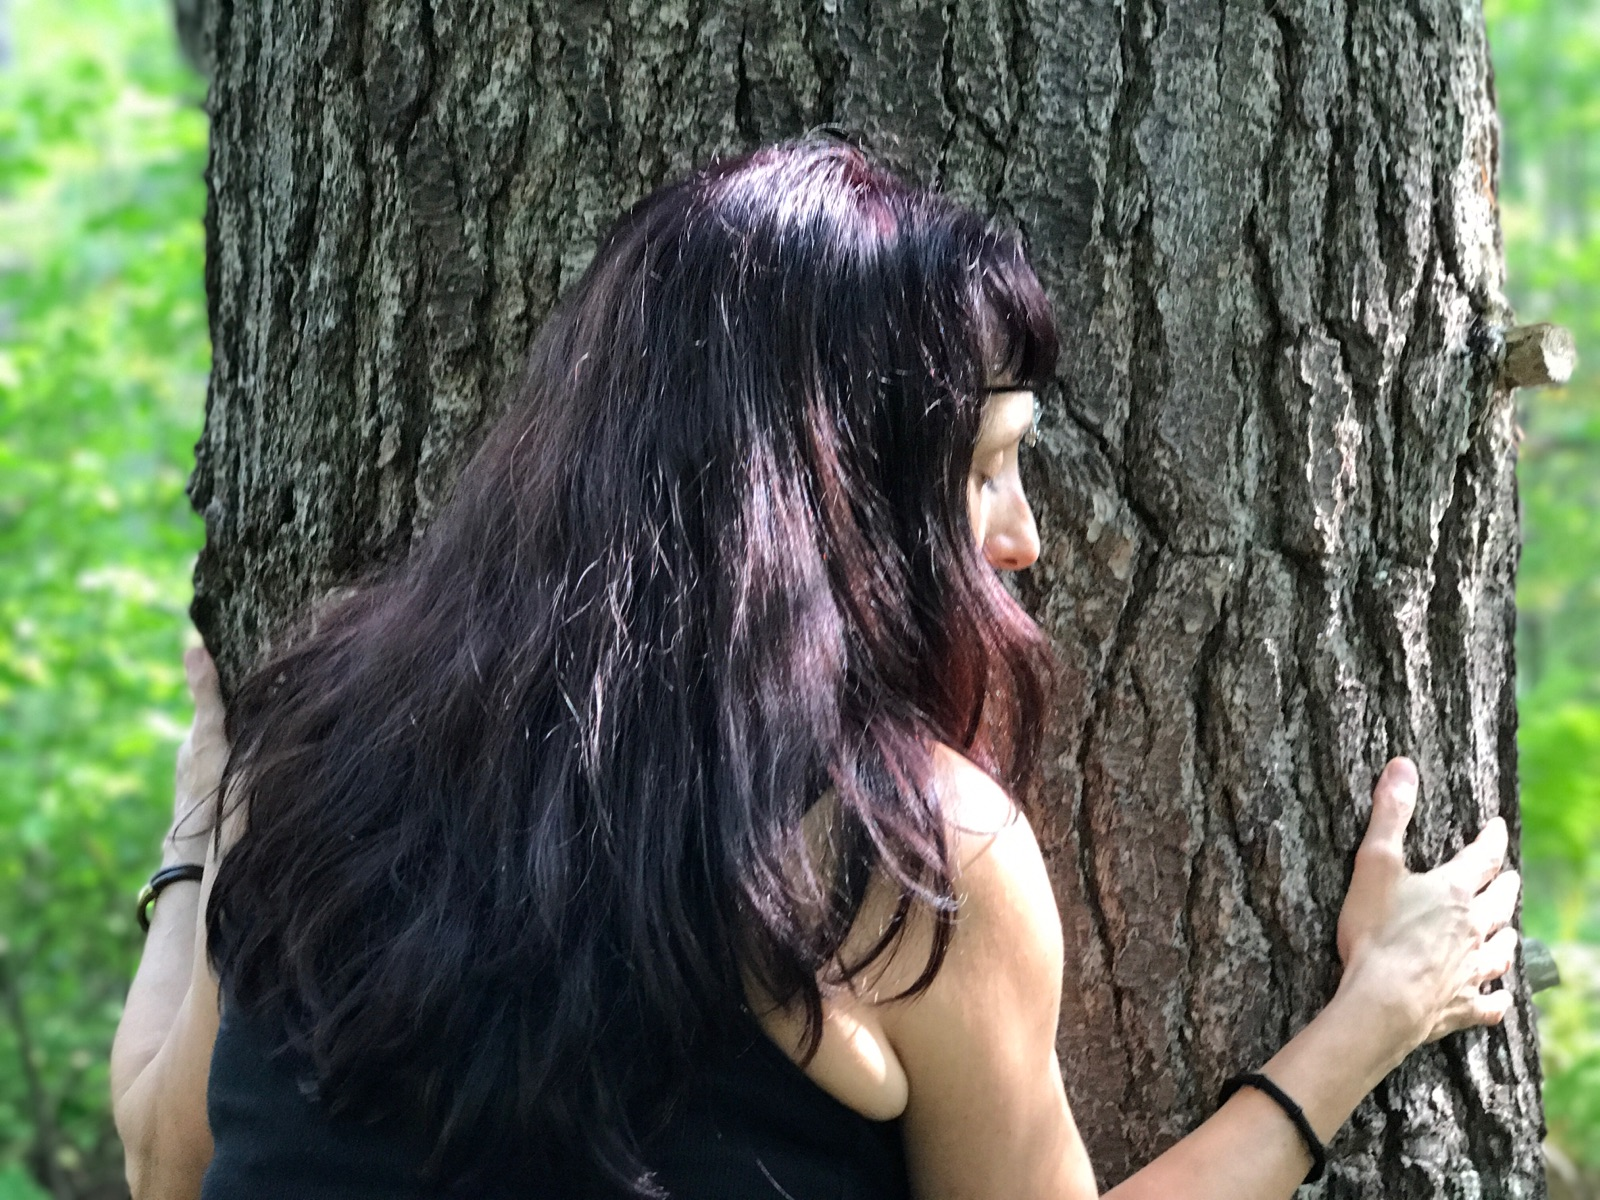 Finding deep healing in the presence of White Pine